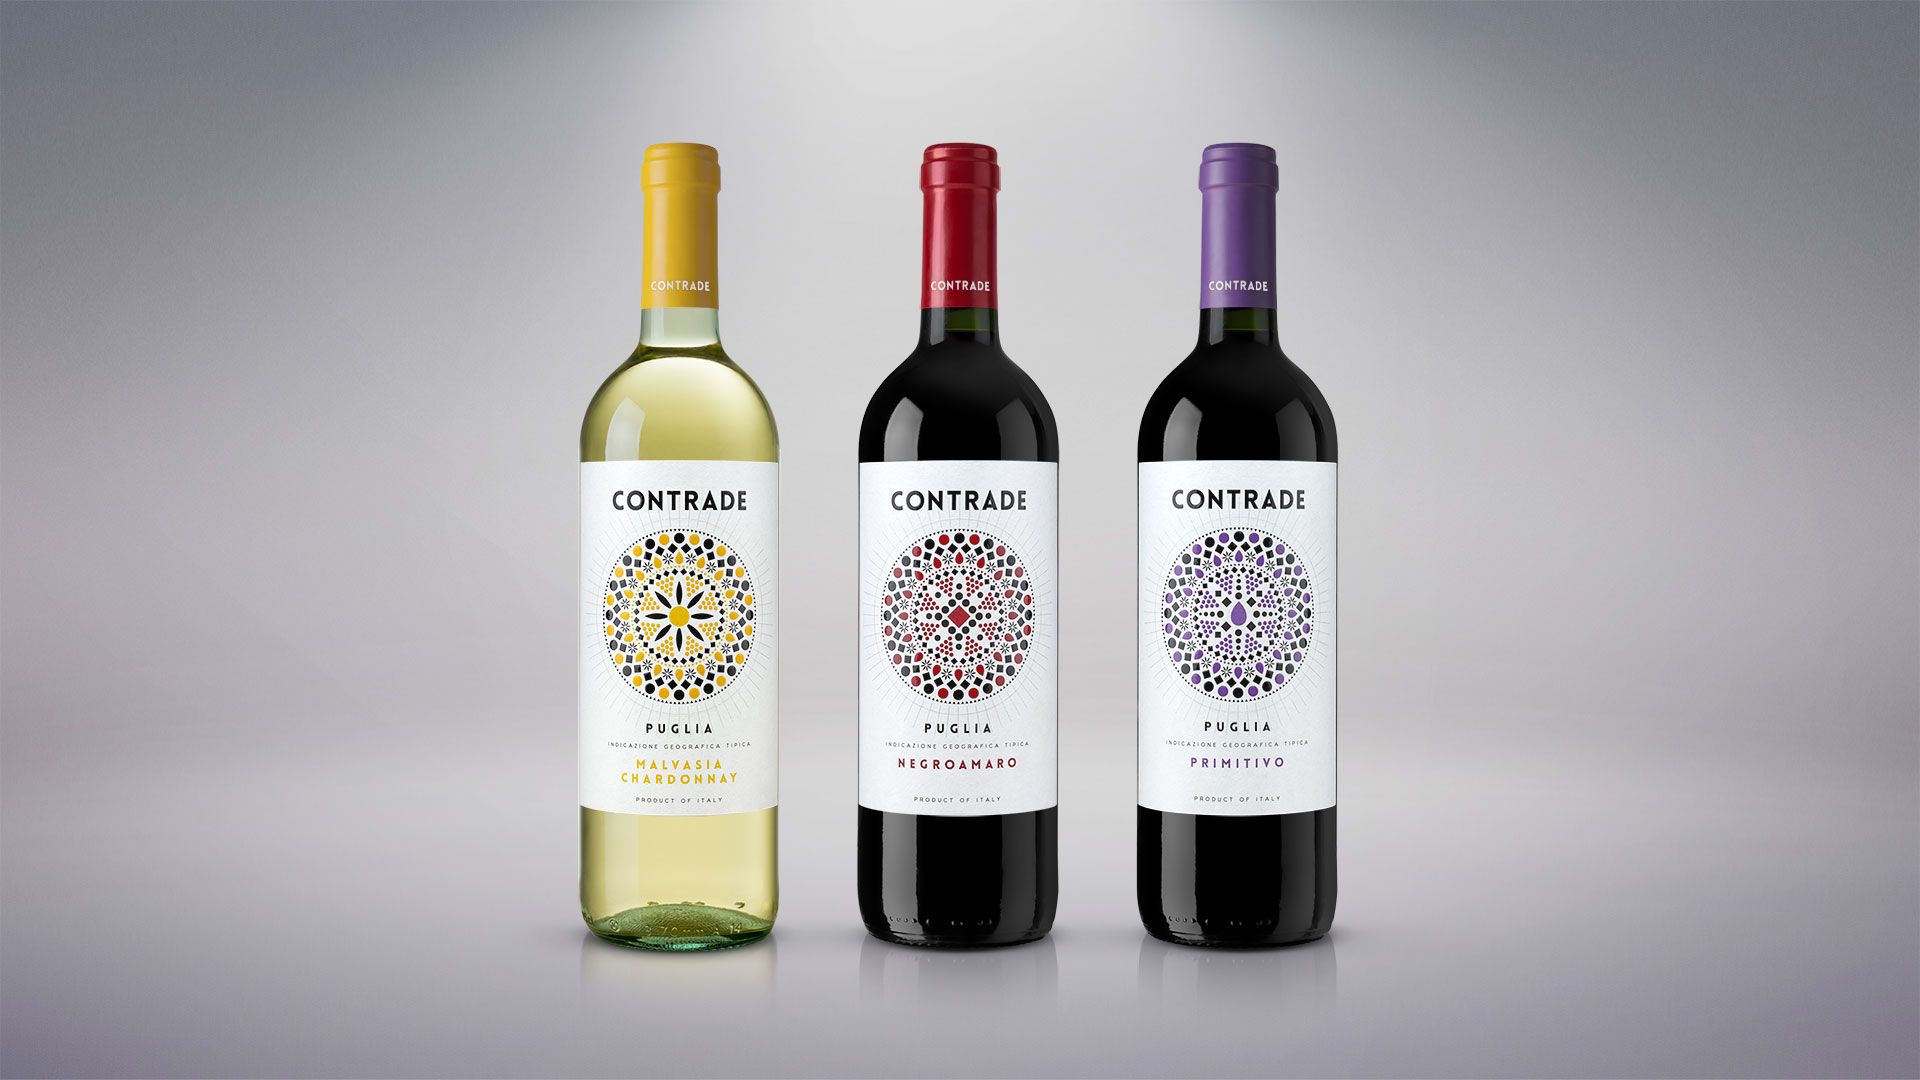 contrade wines 1920x1080 - Label Design Etichette vini Contrade